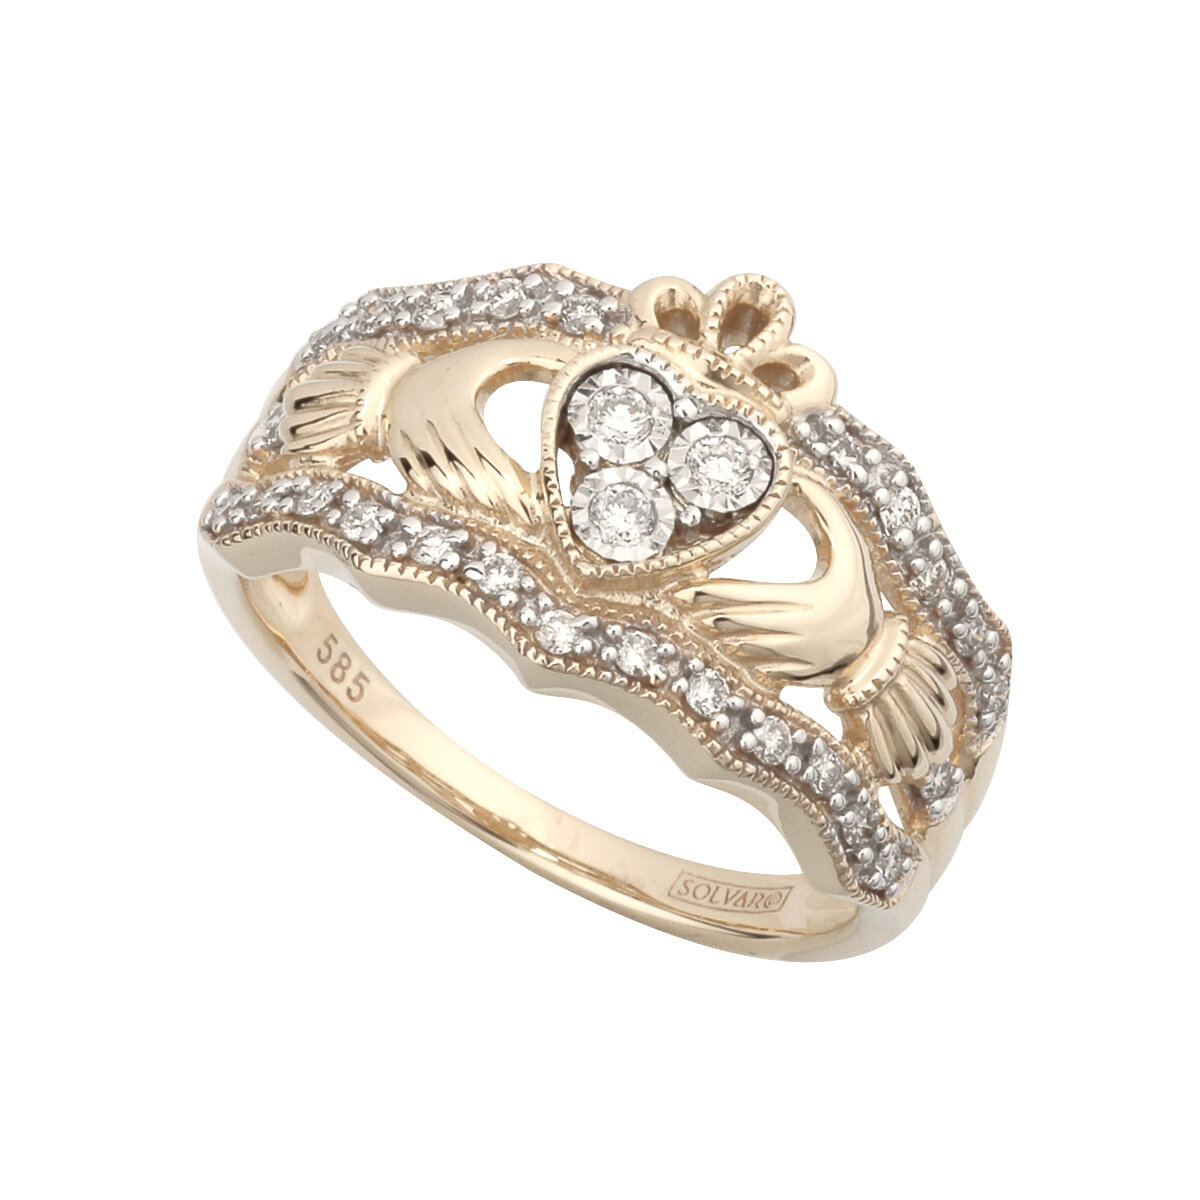 ladies 14k gold diamond wide claddagh ring s21023 from Solvar